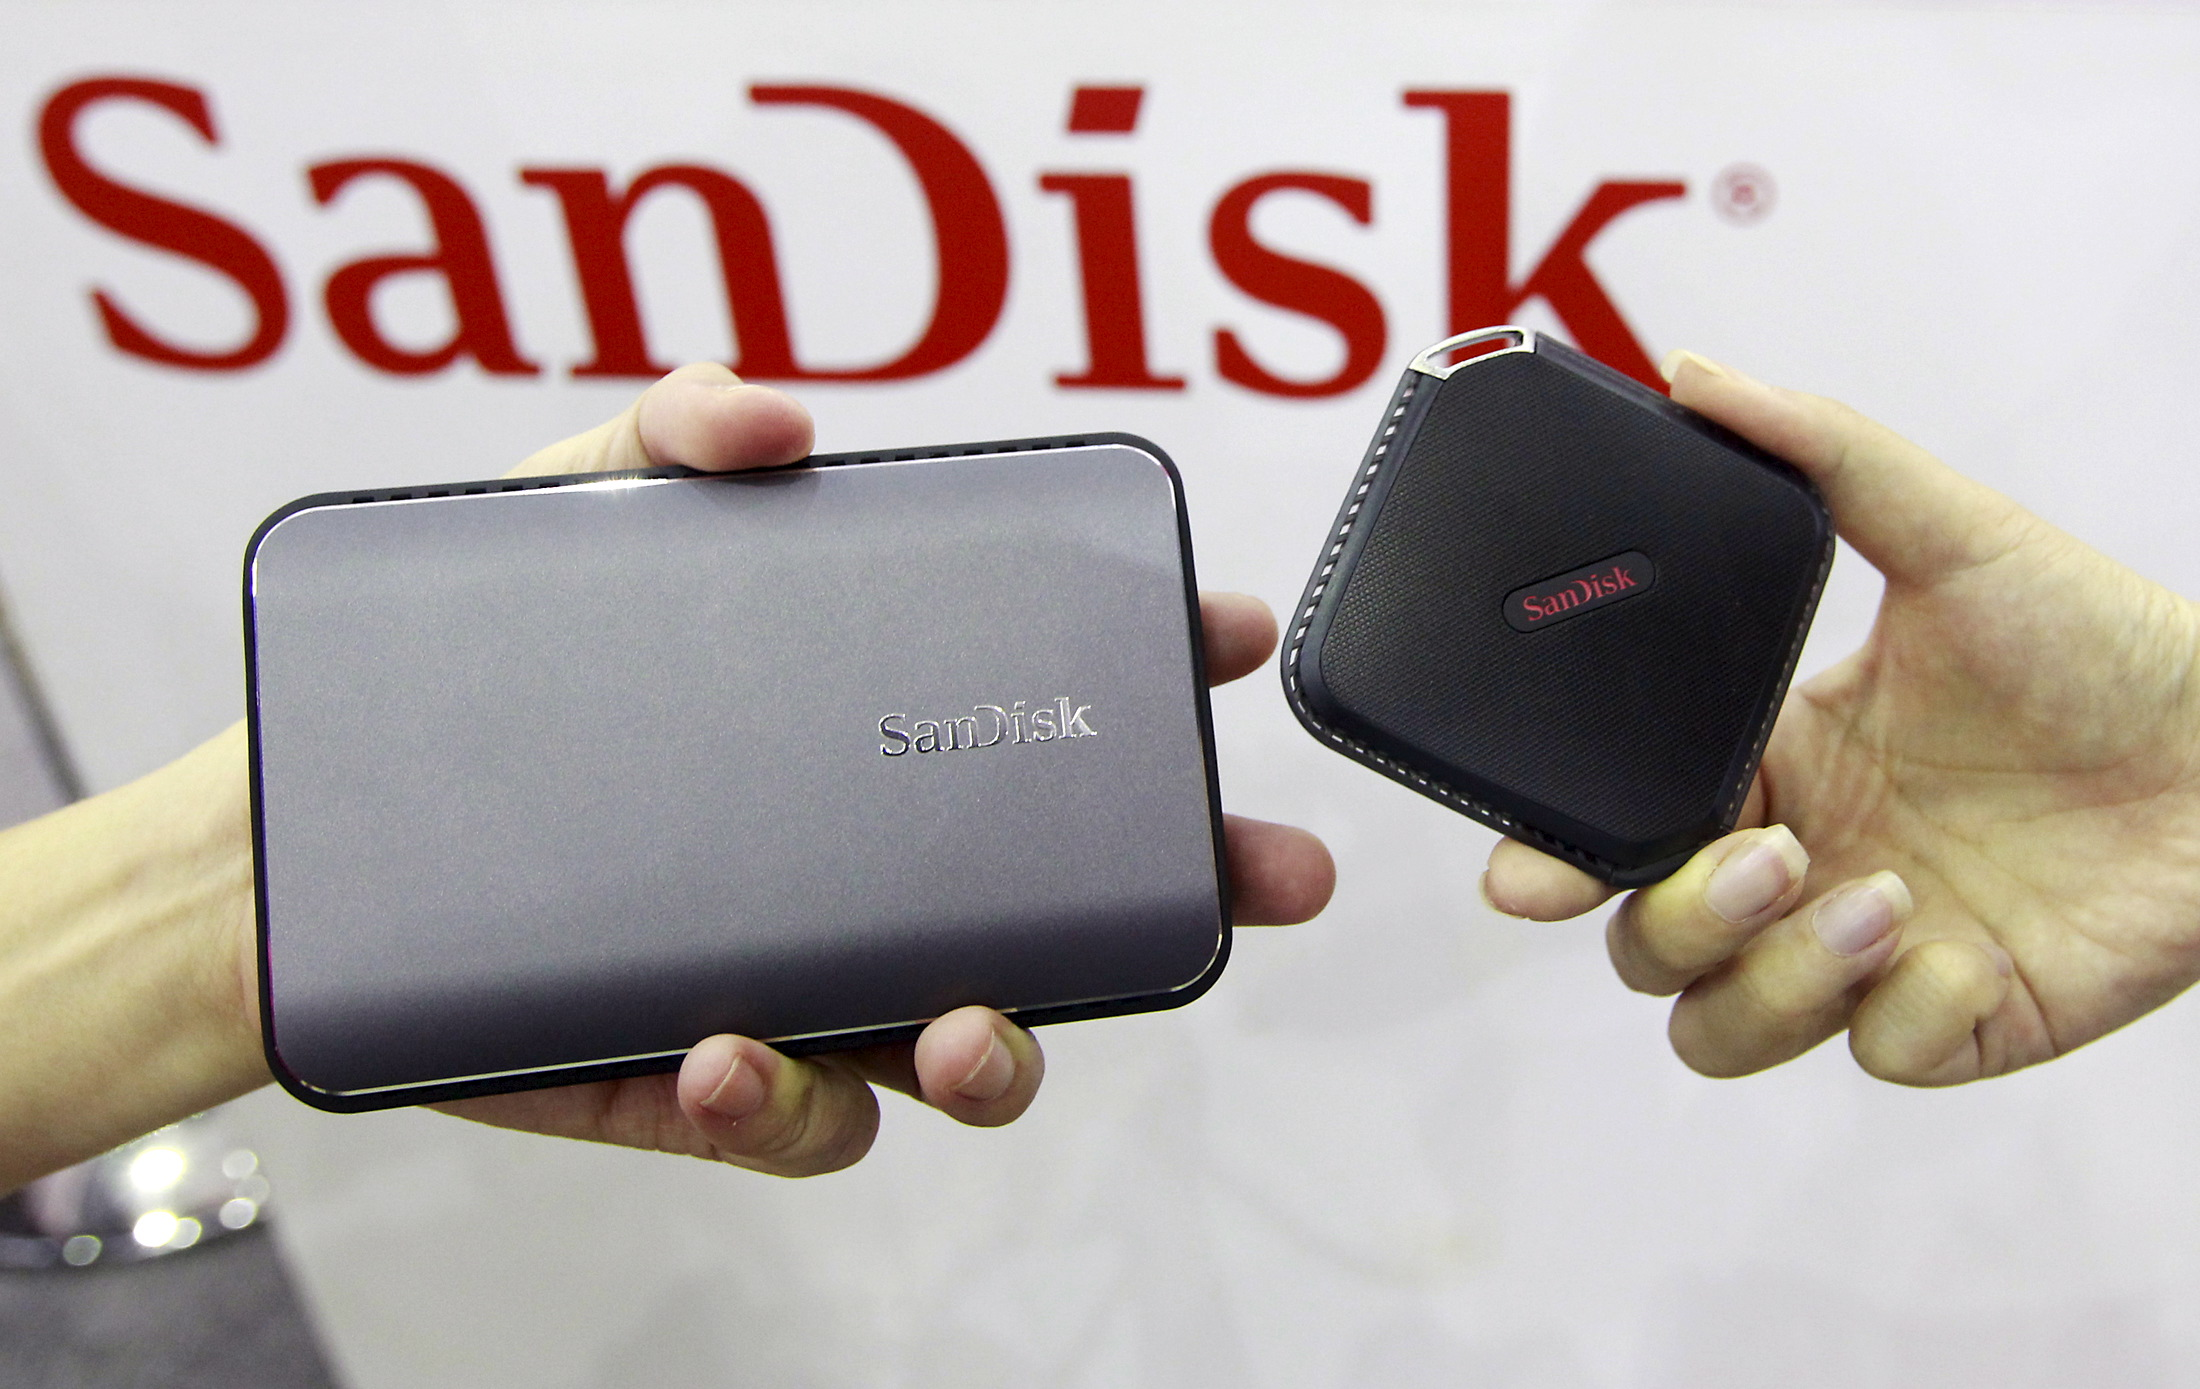 Sandisk's new portable solid state drives are displayed at the Sandisk booth during the 2015 Computex exhibition at the TWTC Nangang exhibition hall in Taipei, Taiwan